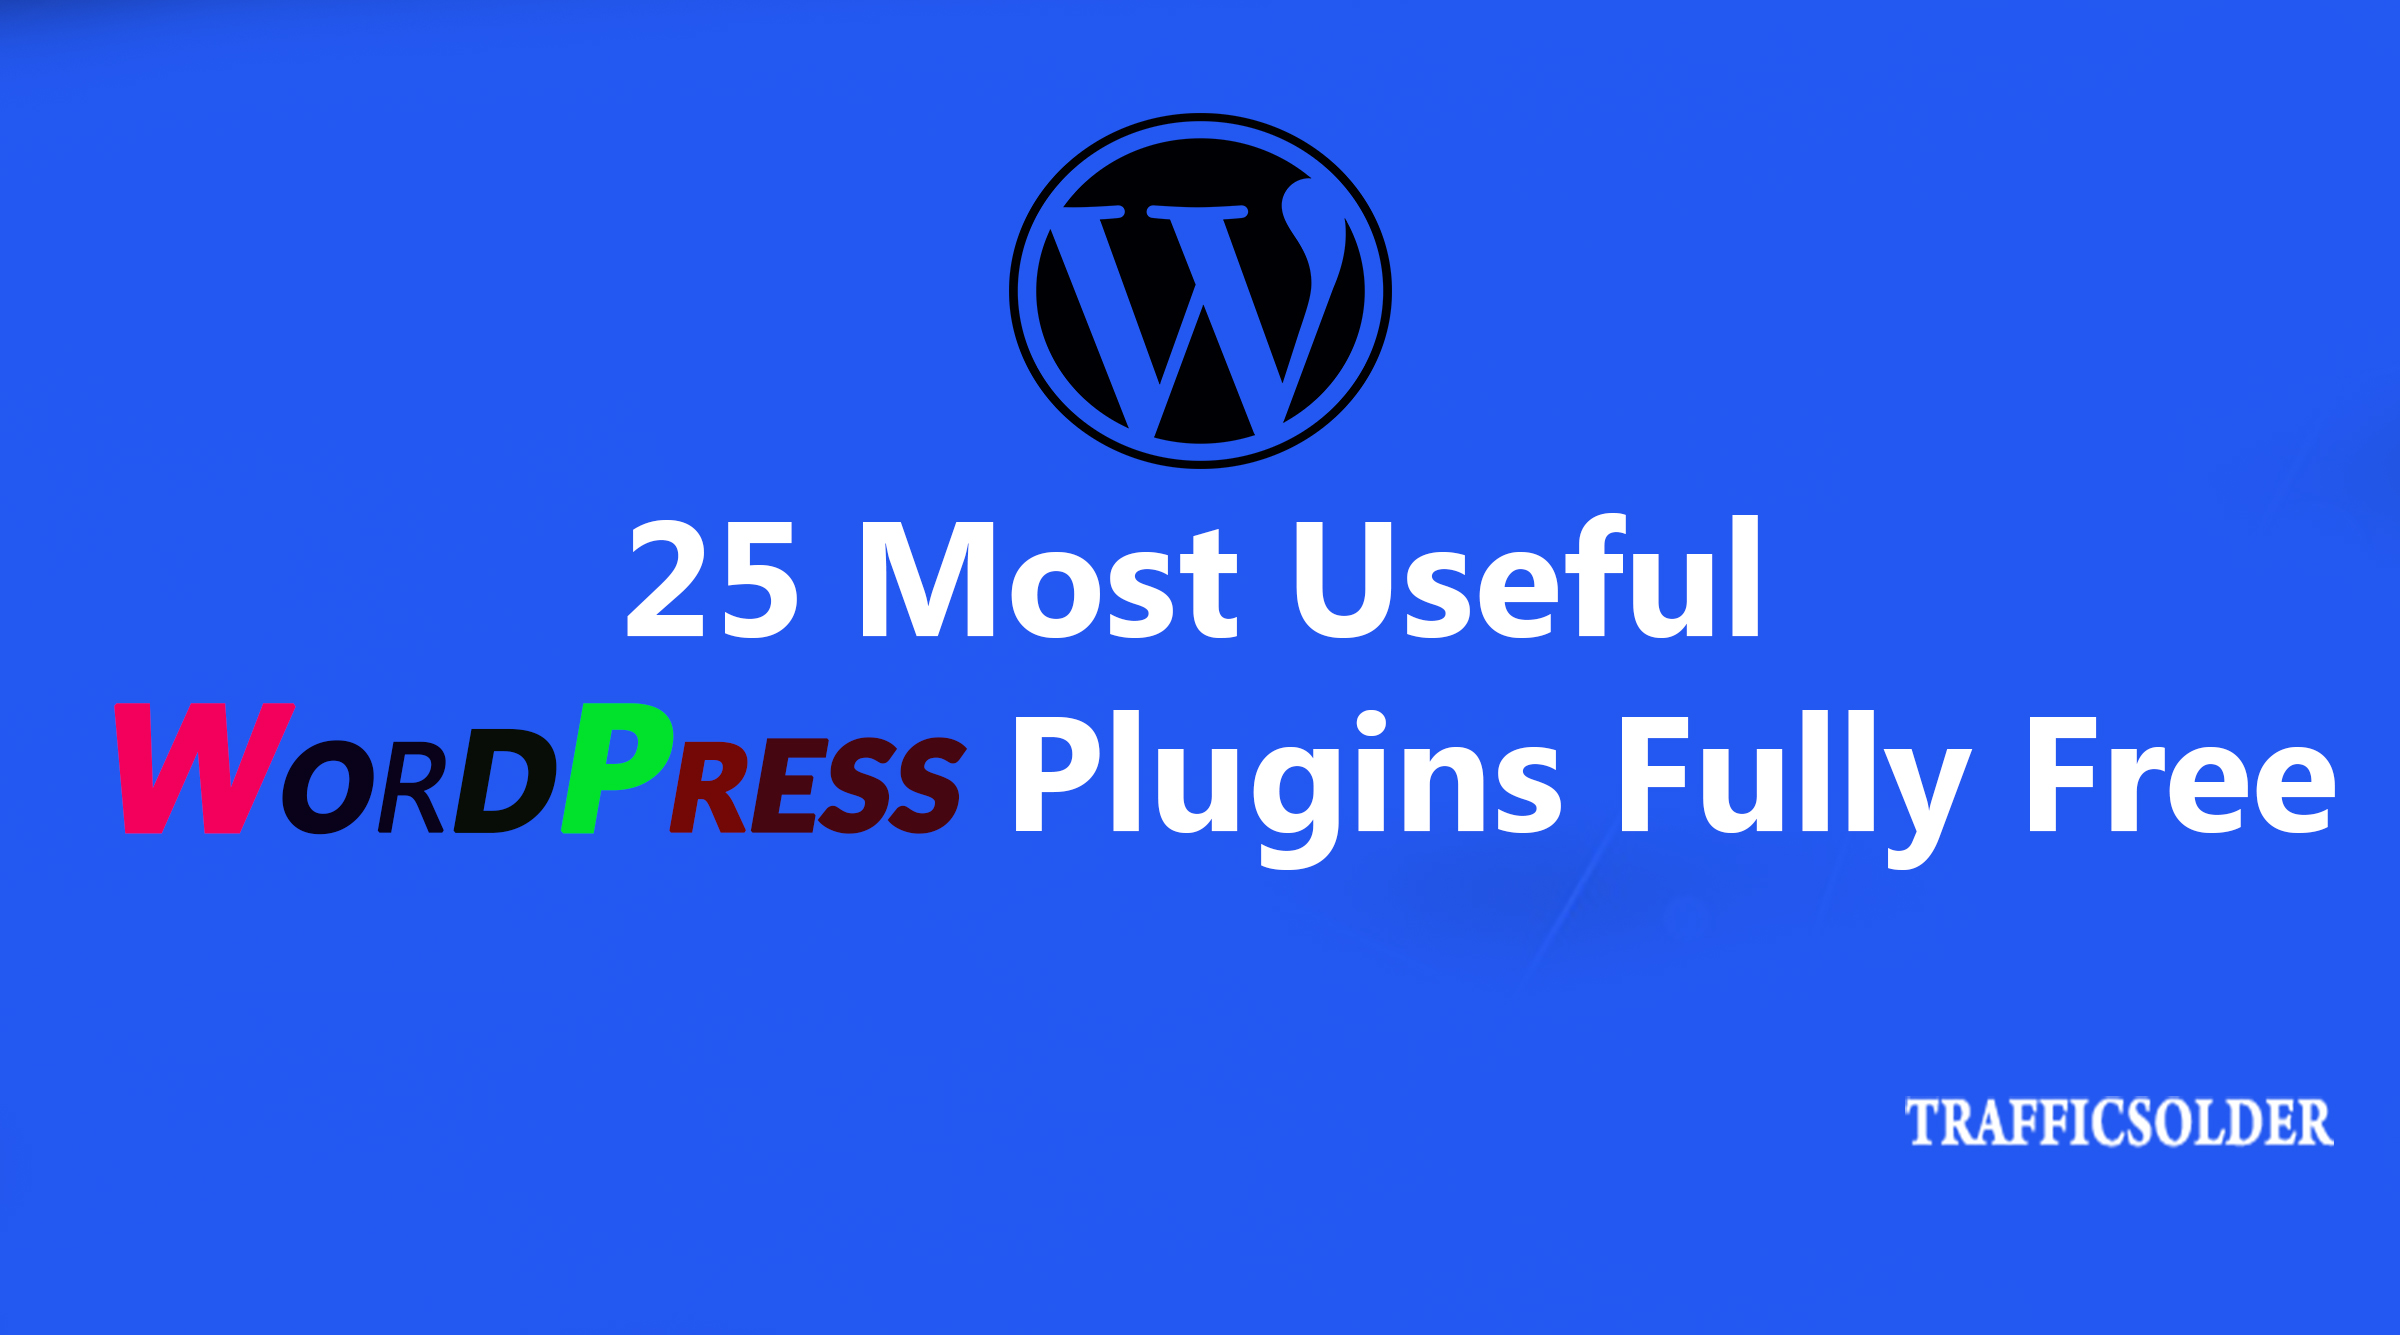 25 Most Useful WordPress Plugins Absolutely Free 2018